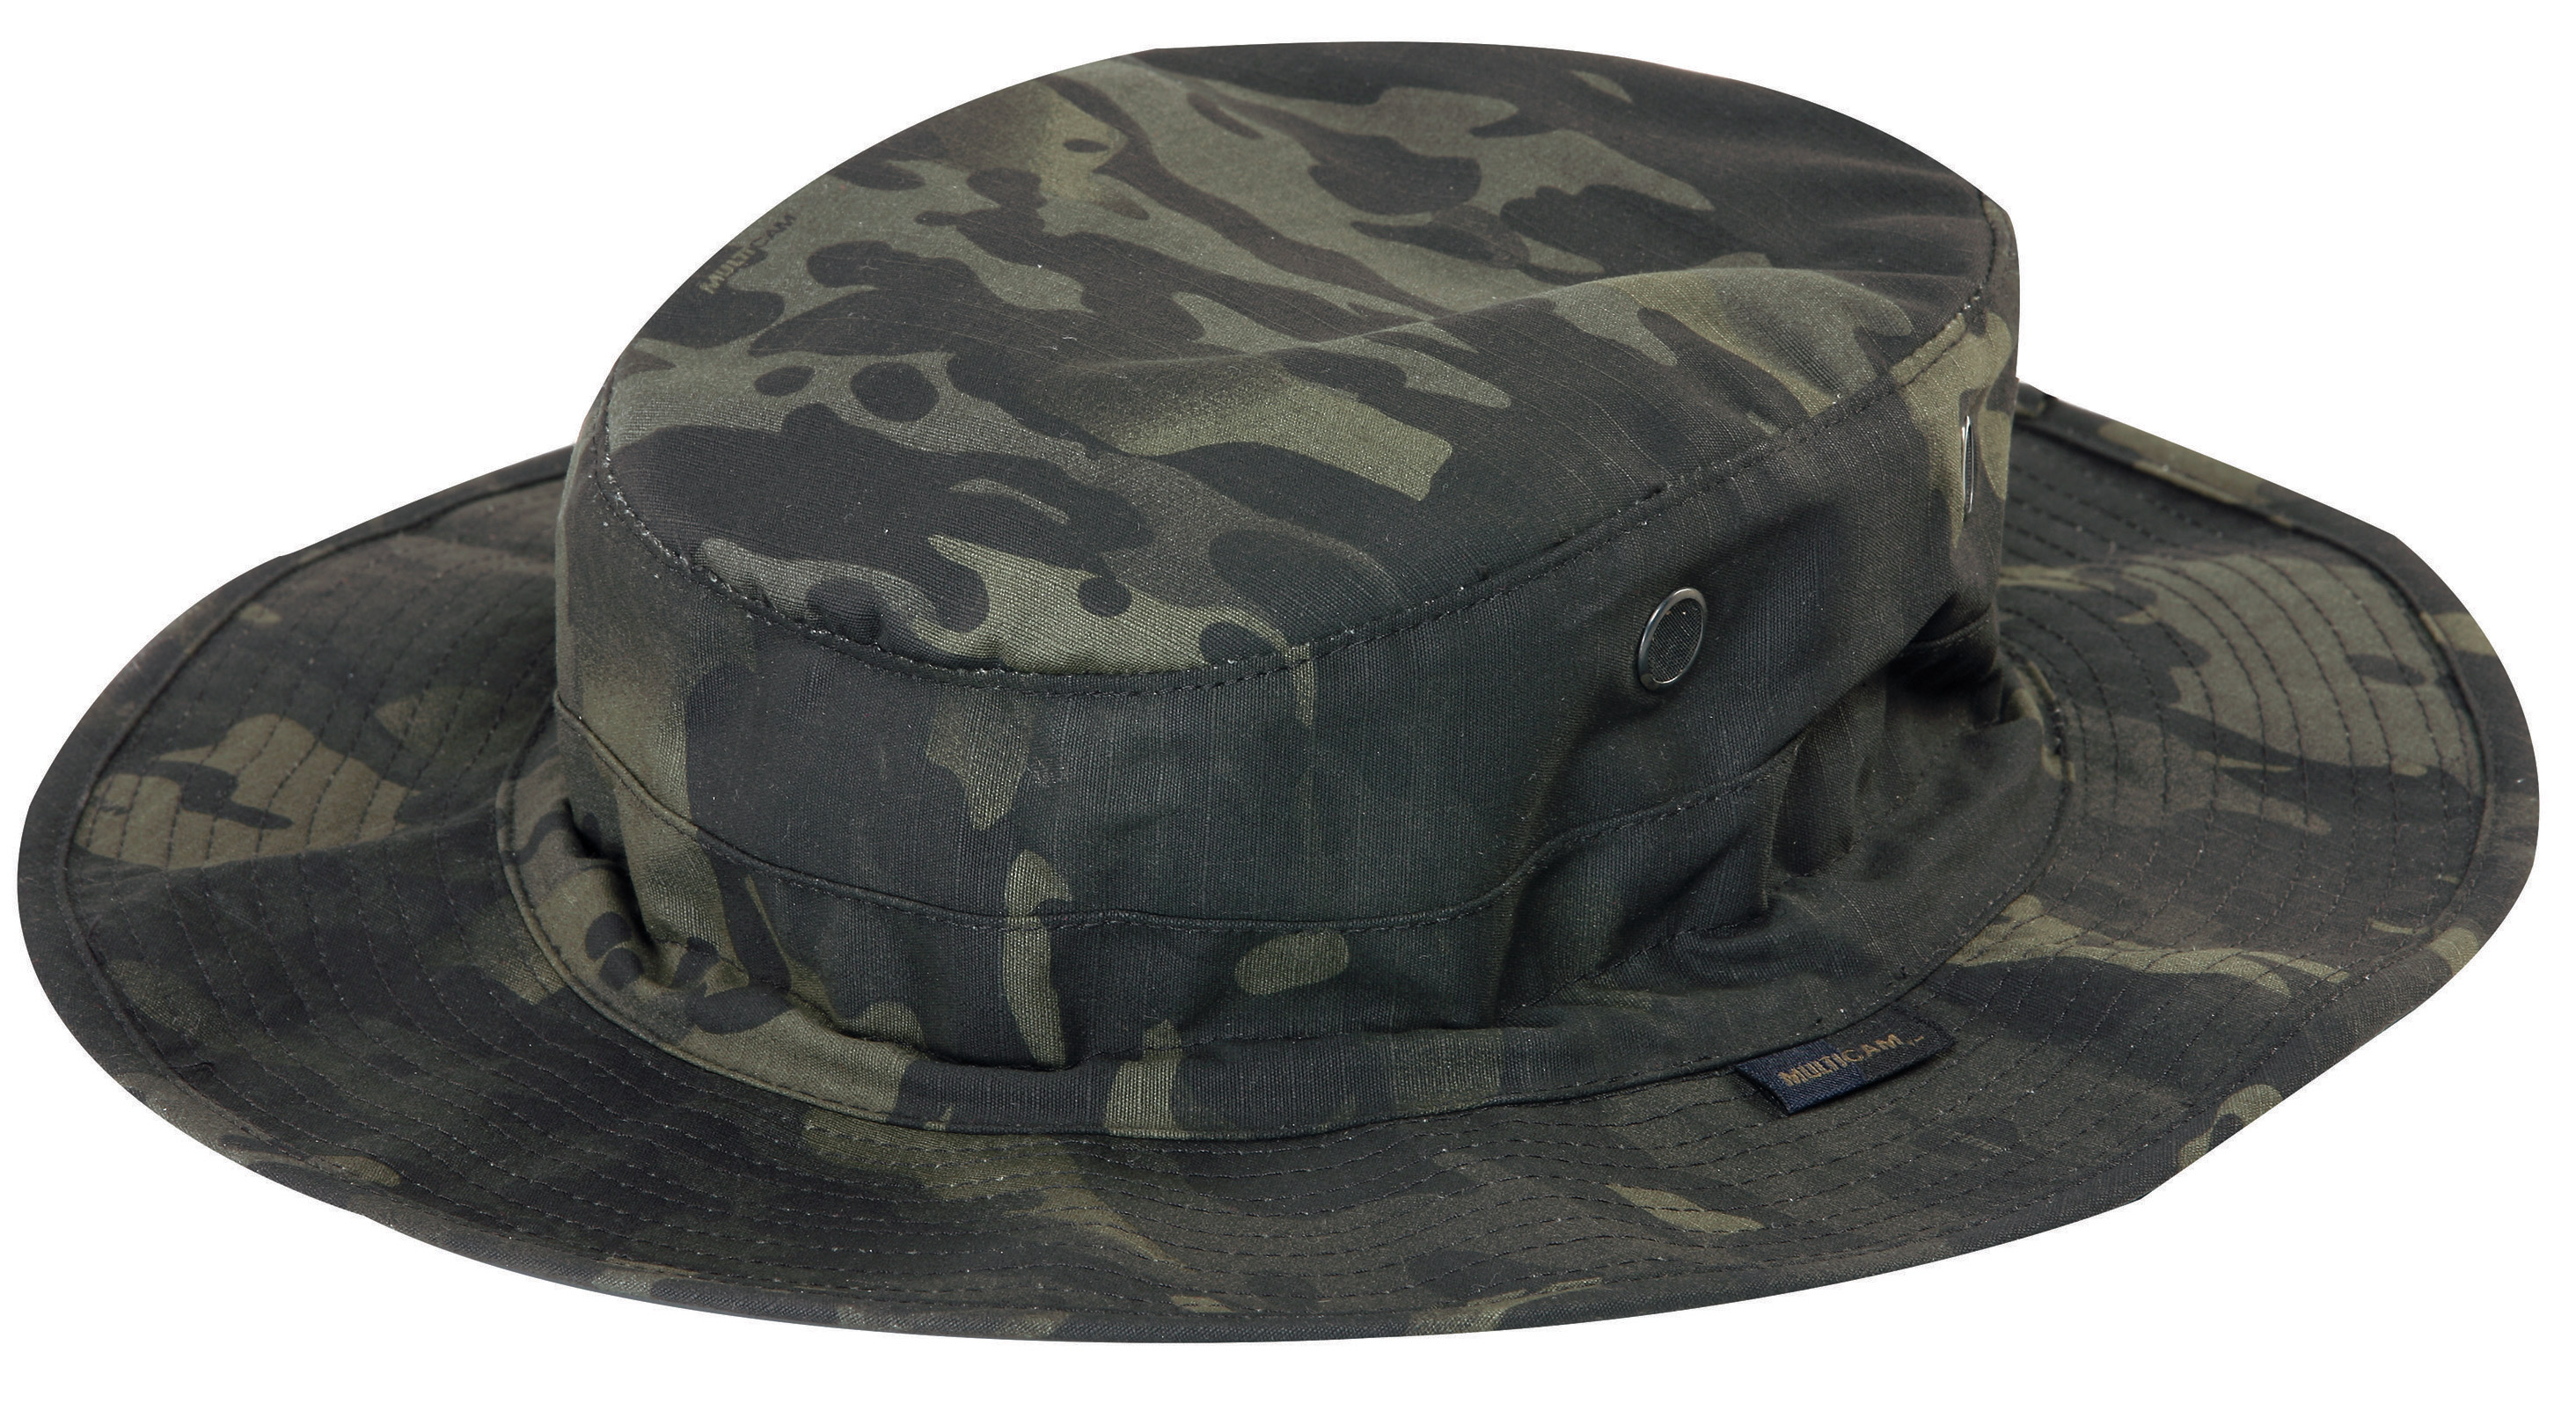 3320 Boonie Hat Multicam Black On Duty Gear Police